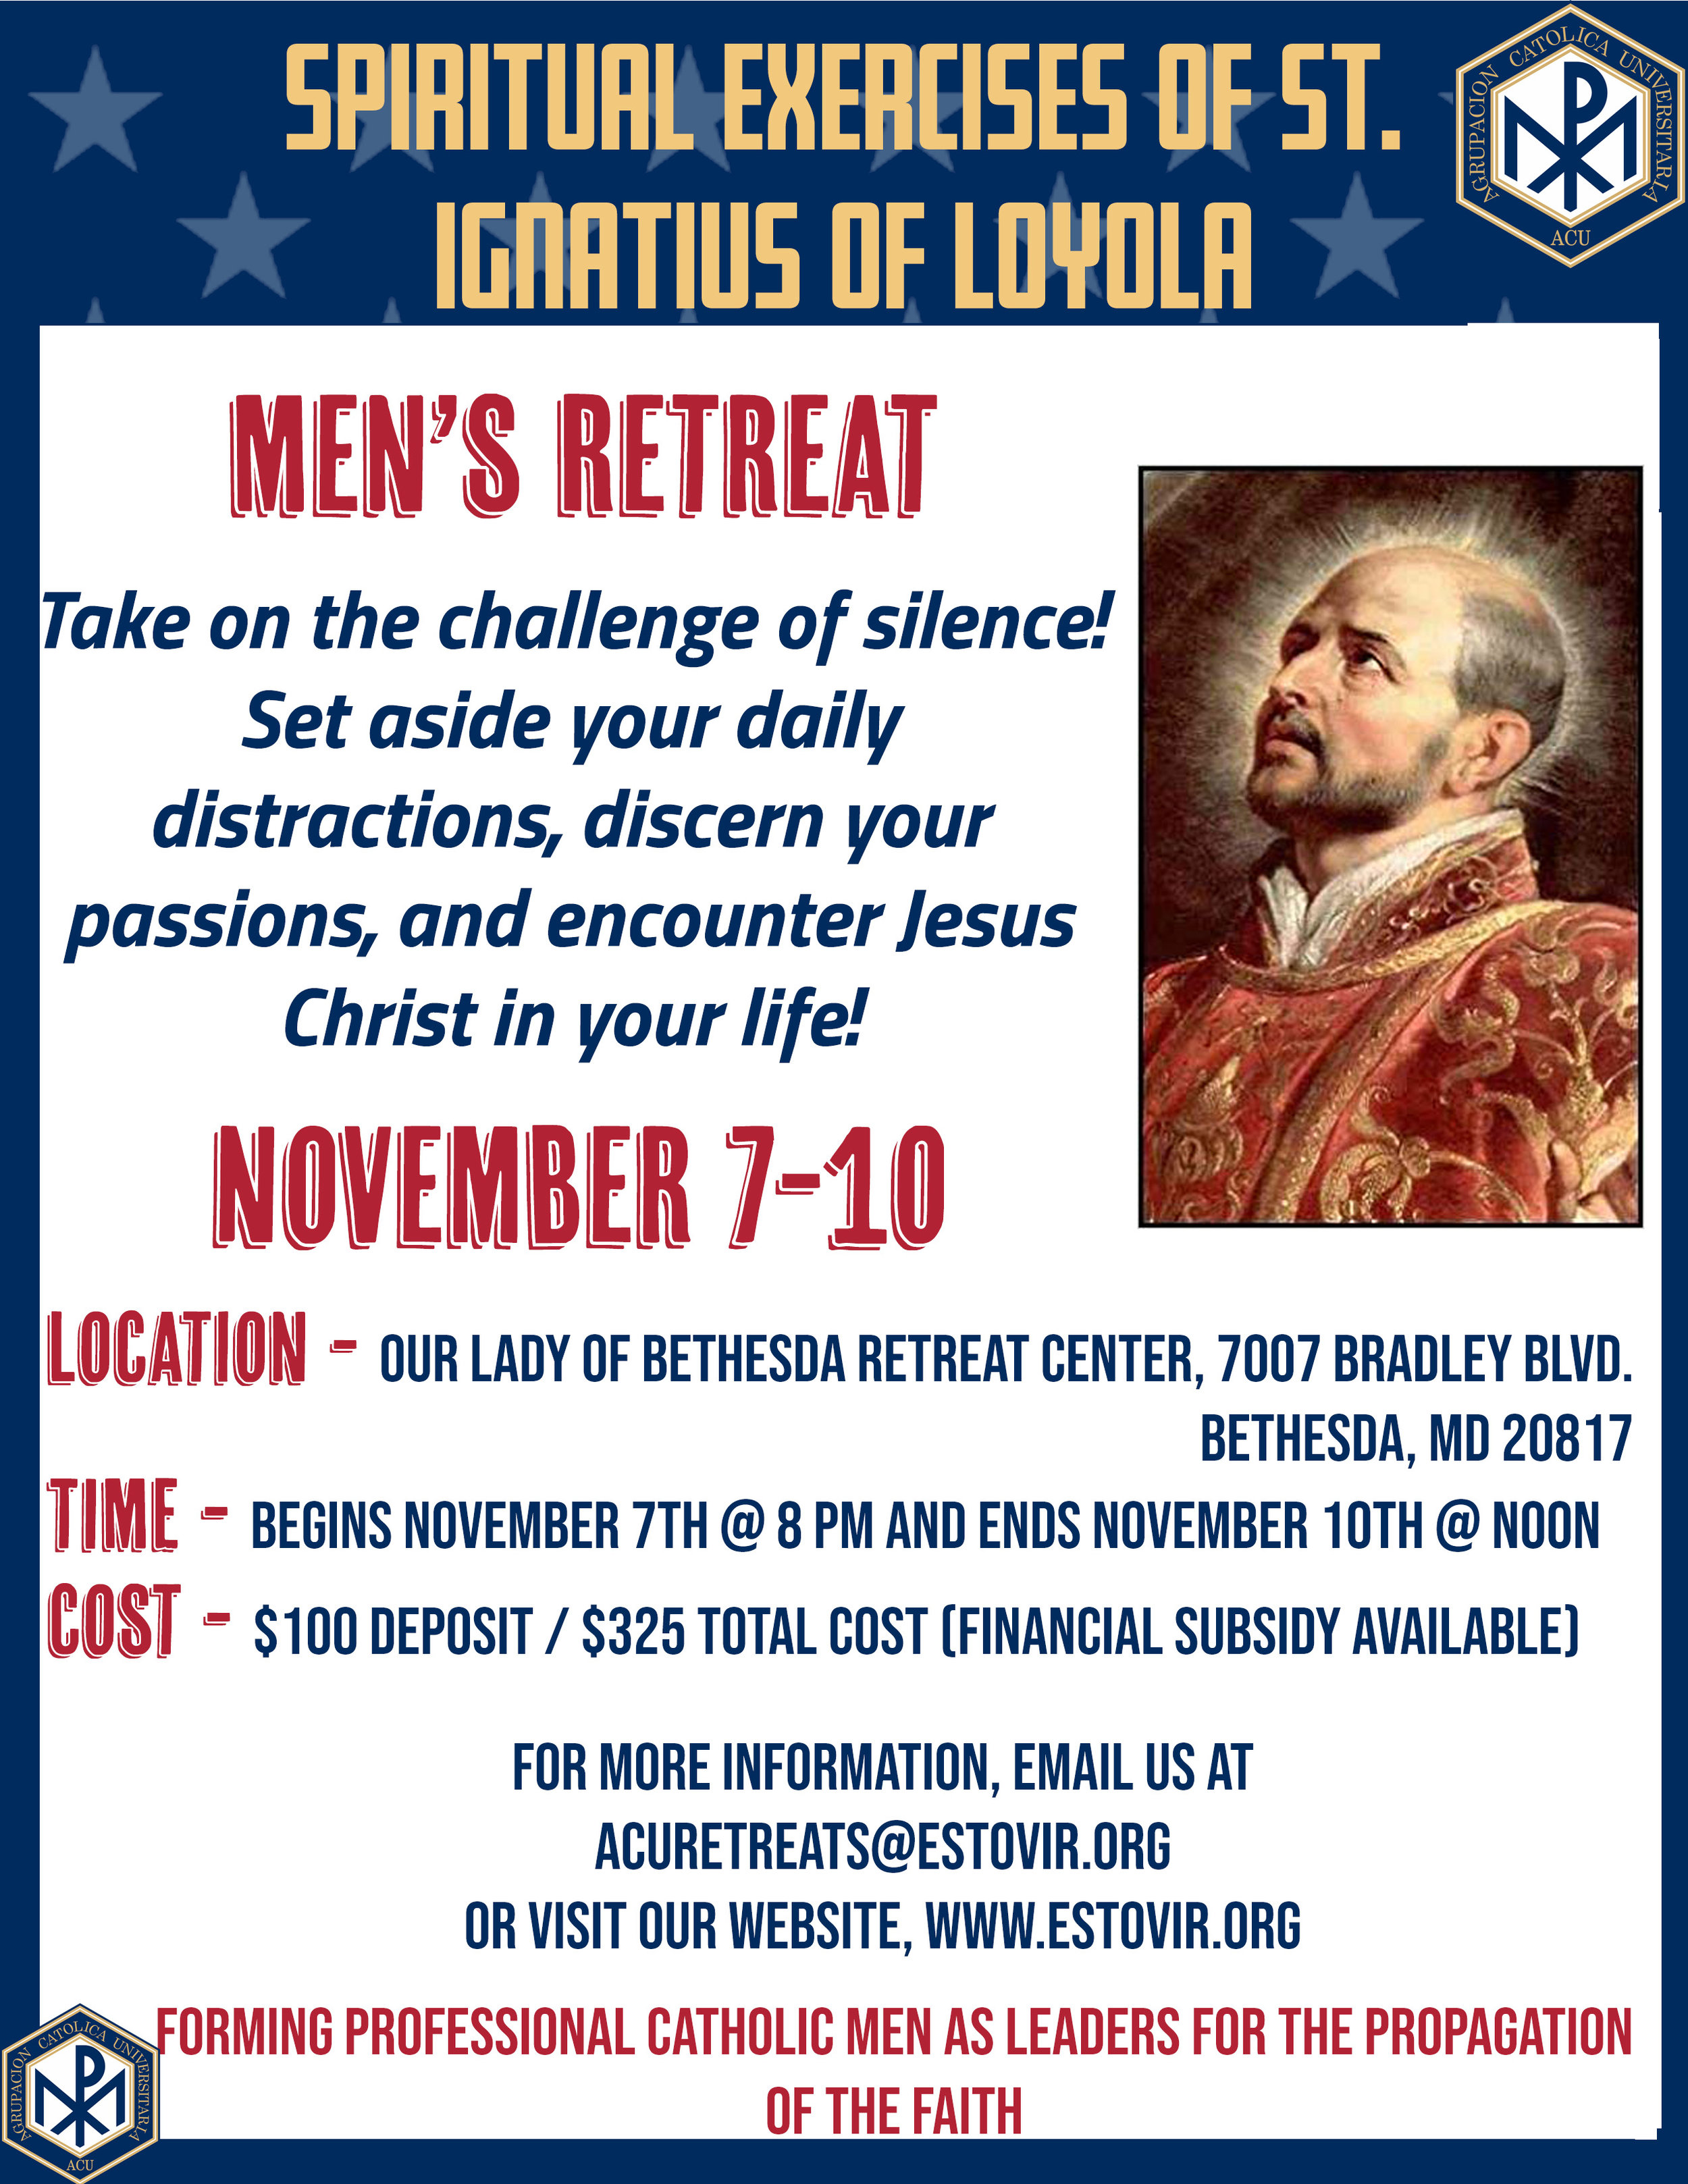 DC Men's Retreat Nov 7-10.jpg